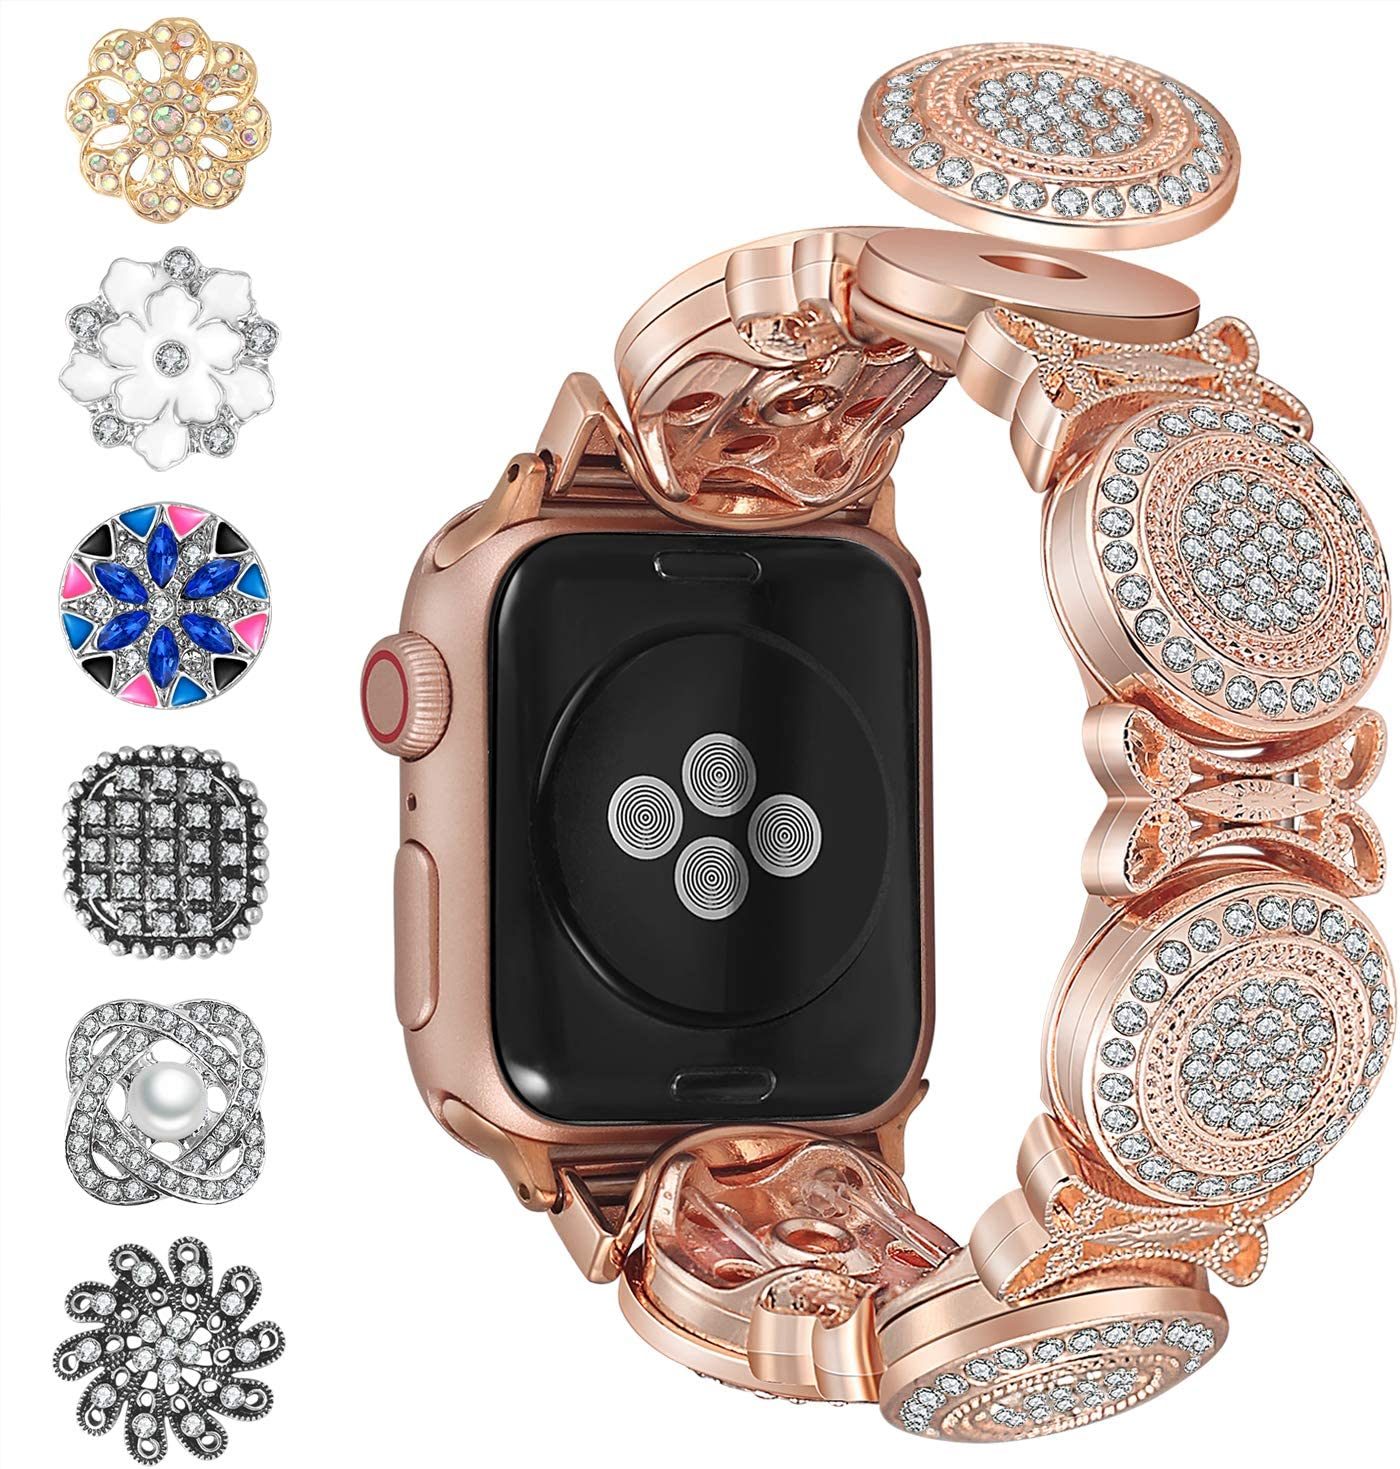 Blinkbrione DIY 2 in 1 Bracelet Apple watch Bands replacement for iwatch Serie 5 4 3 2 1 42/44mm for Women with Removable Snaps Rhinestones Bling iWatch Band Bracelet (42/44MM Gold Circle)